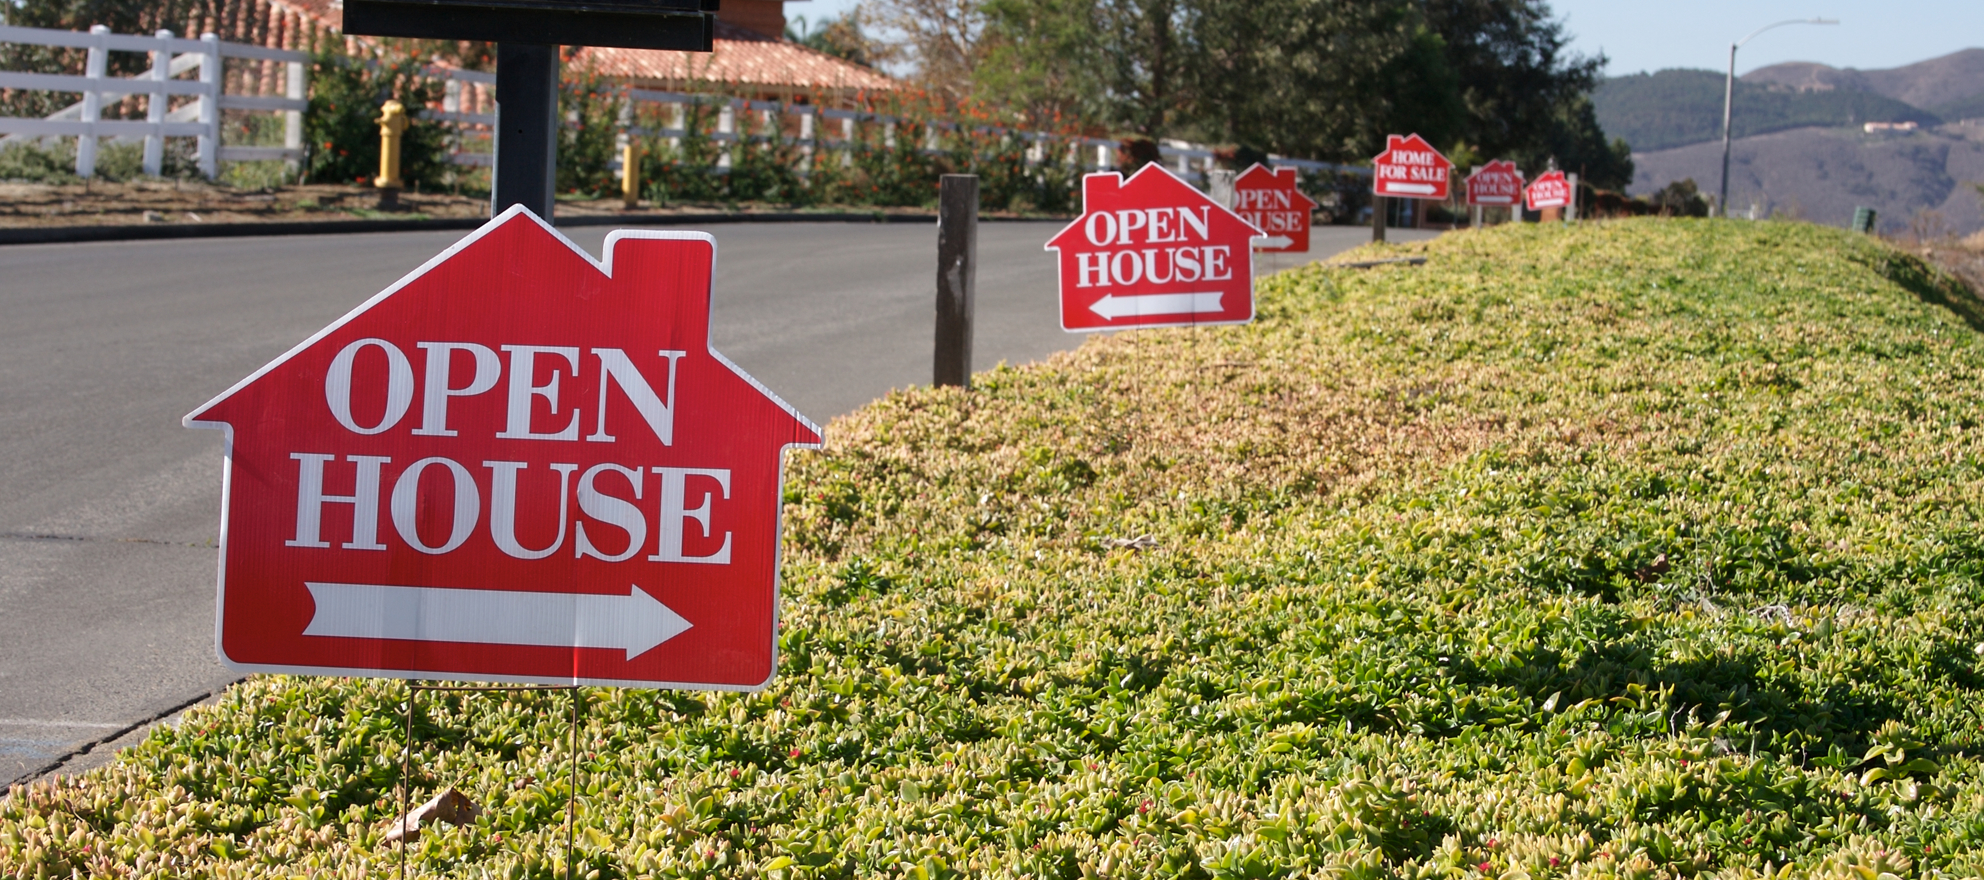 Open house marketing to build your brand